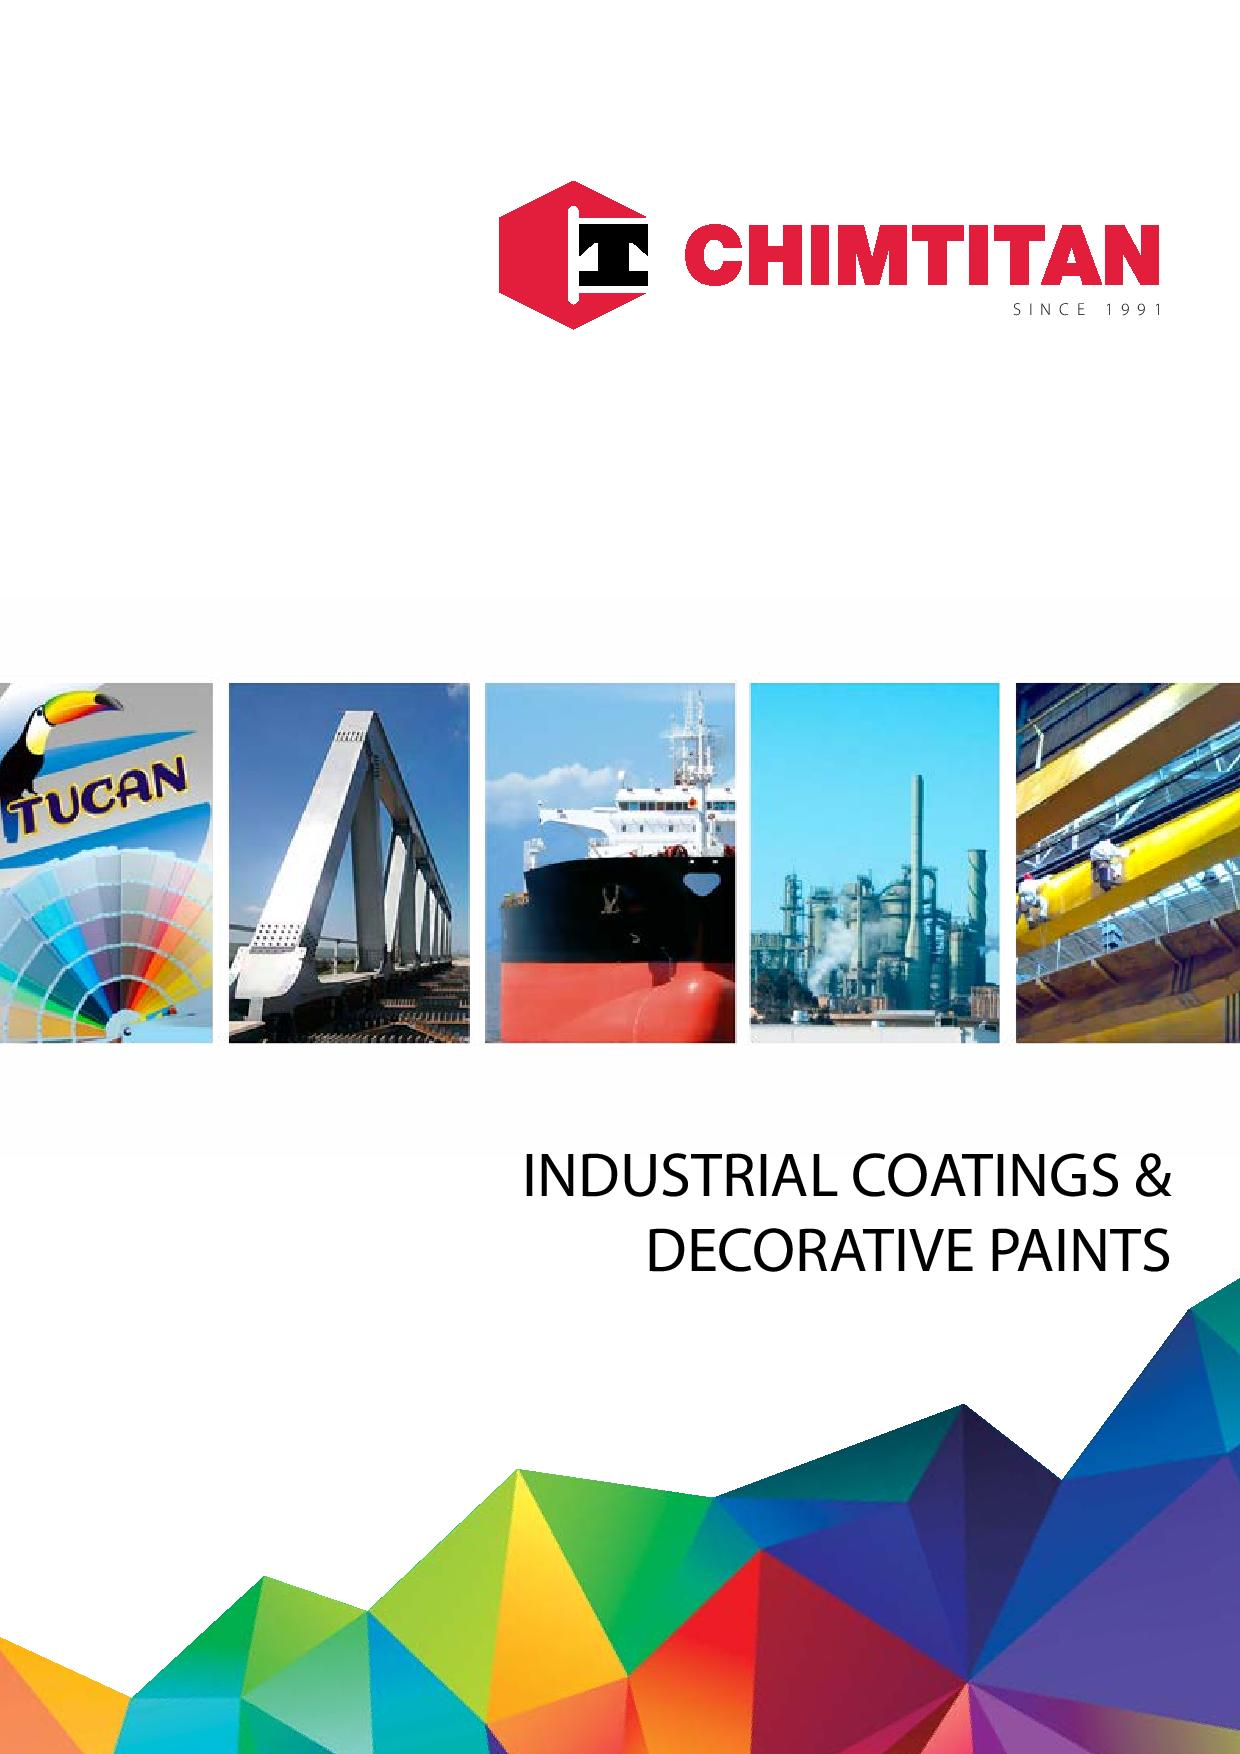 CHIMTITAN Industrial Coatings & Decorative Paints